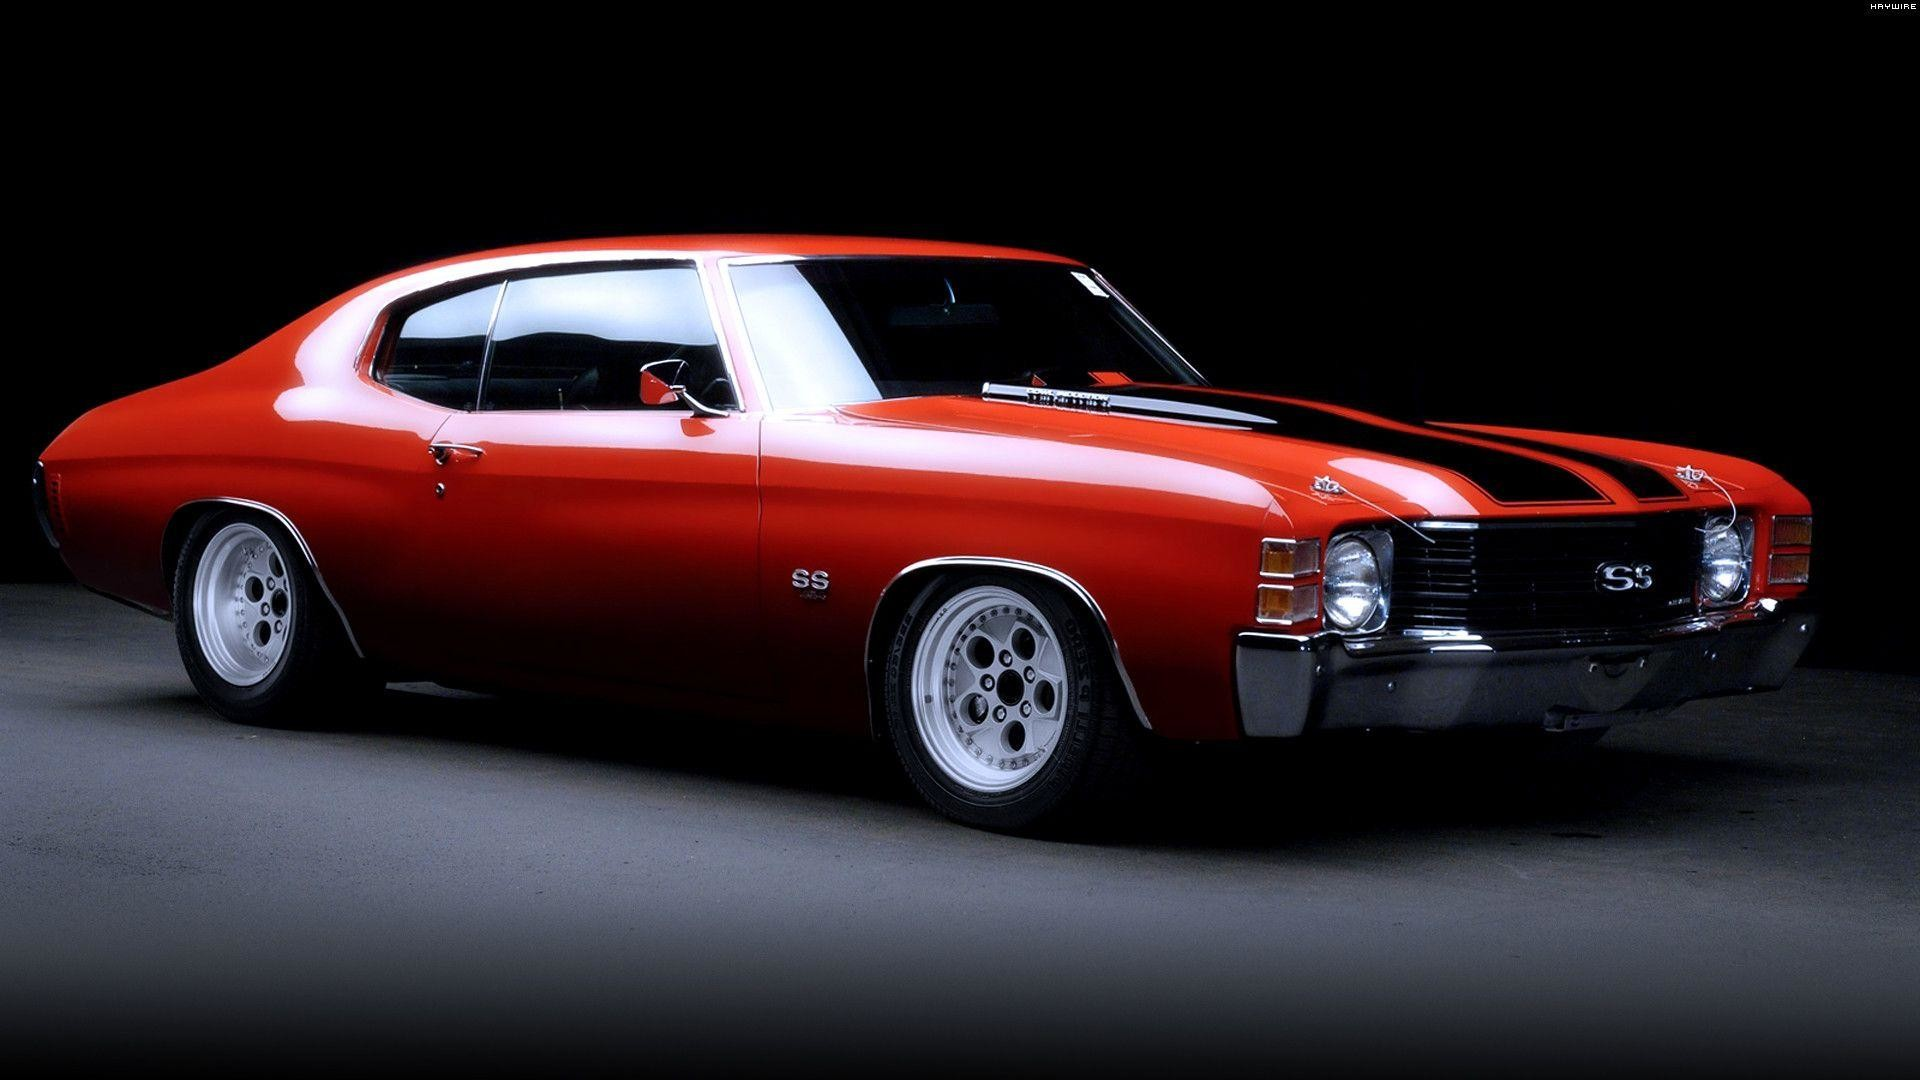 1970 Chevelle Ss Wallpaper 58 Images